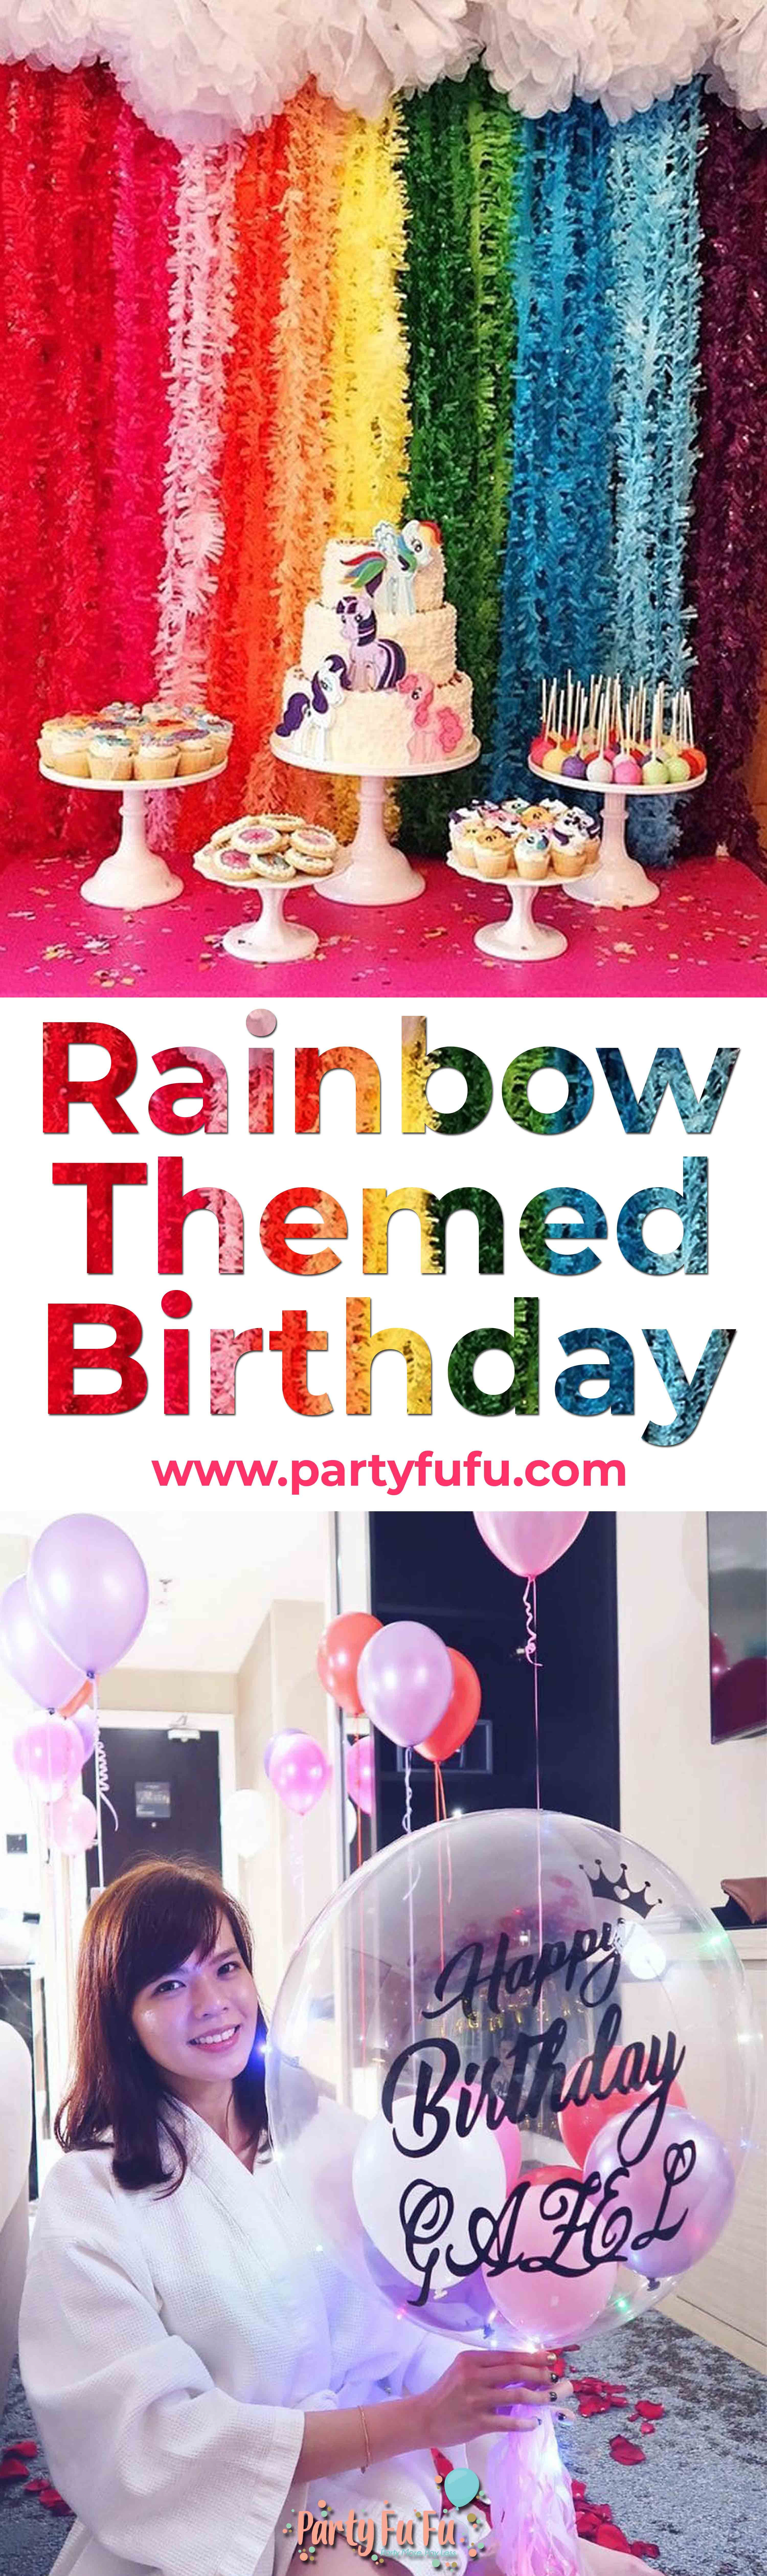 Pony 🎉 parties are so cute! Love the rainbow theme too.💕👌 #partyfufu #forsale #bacheloretteparty #unicorn #balloon #wellness  #party #bachelorette #bach #coolproducts #gifts #cute #fashion #clothing #accessories #dreamcometrue #headband #unicorn #birthdayparty #partysupplies #eventplanner #event